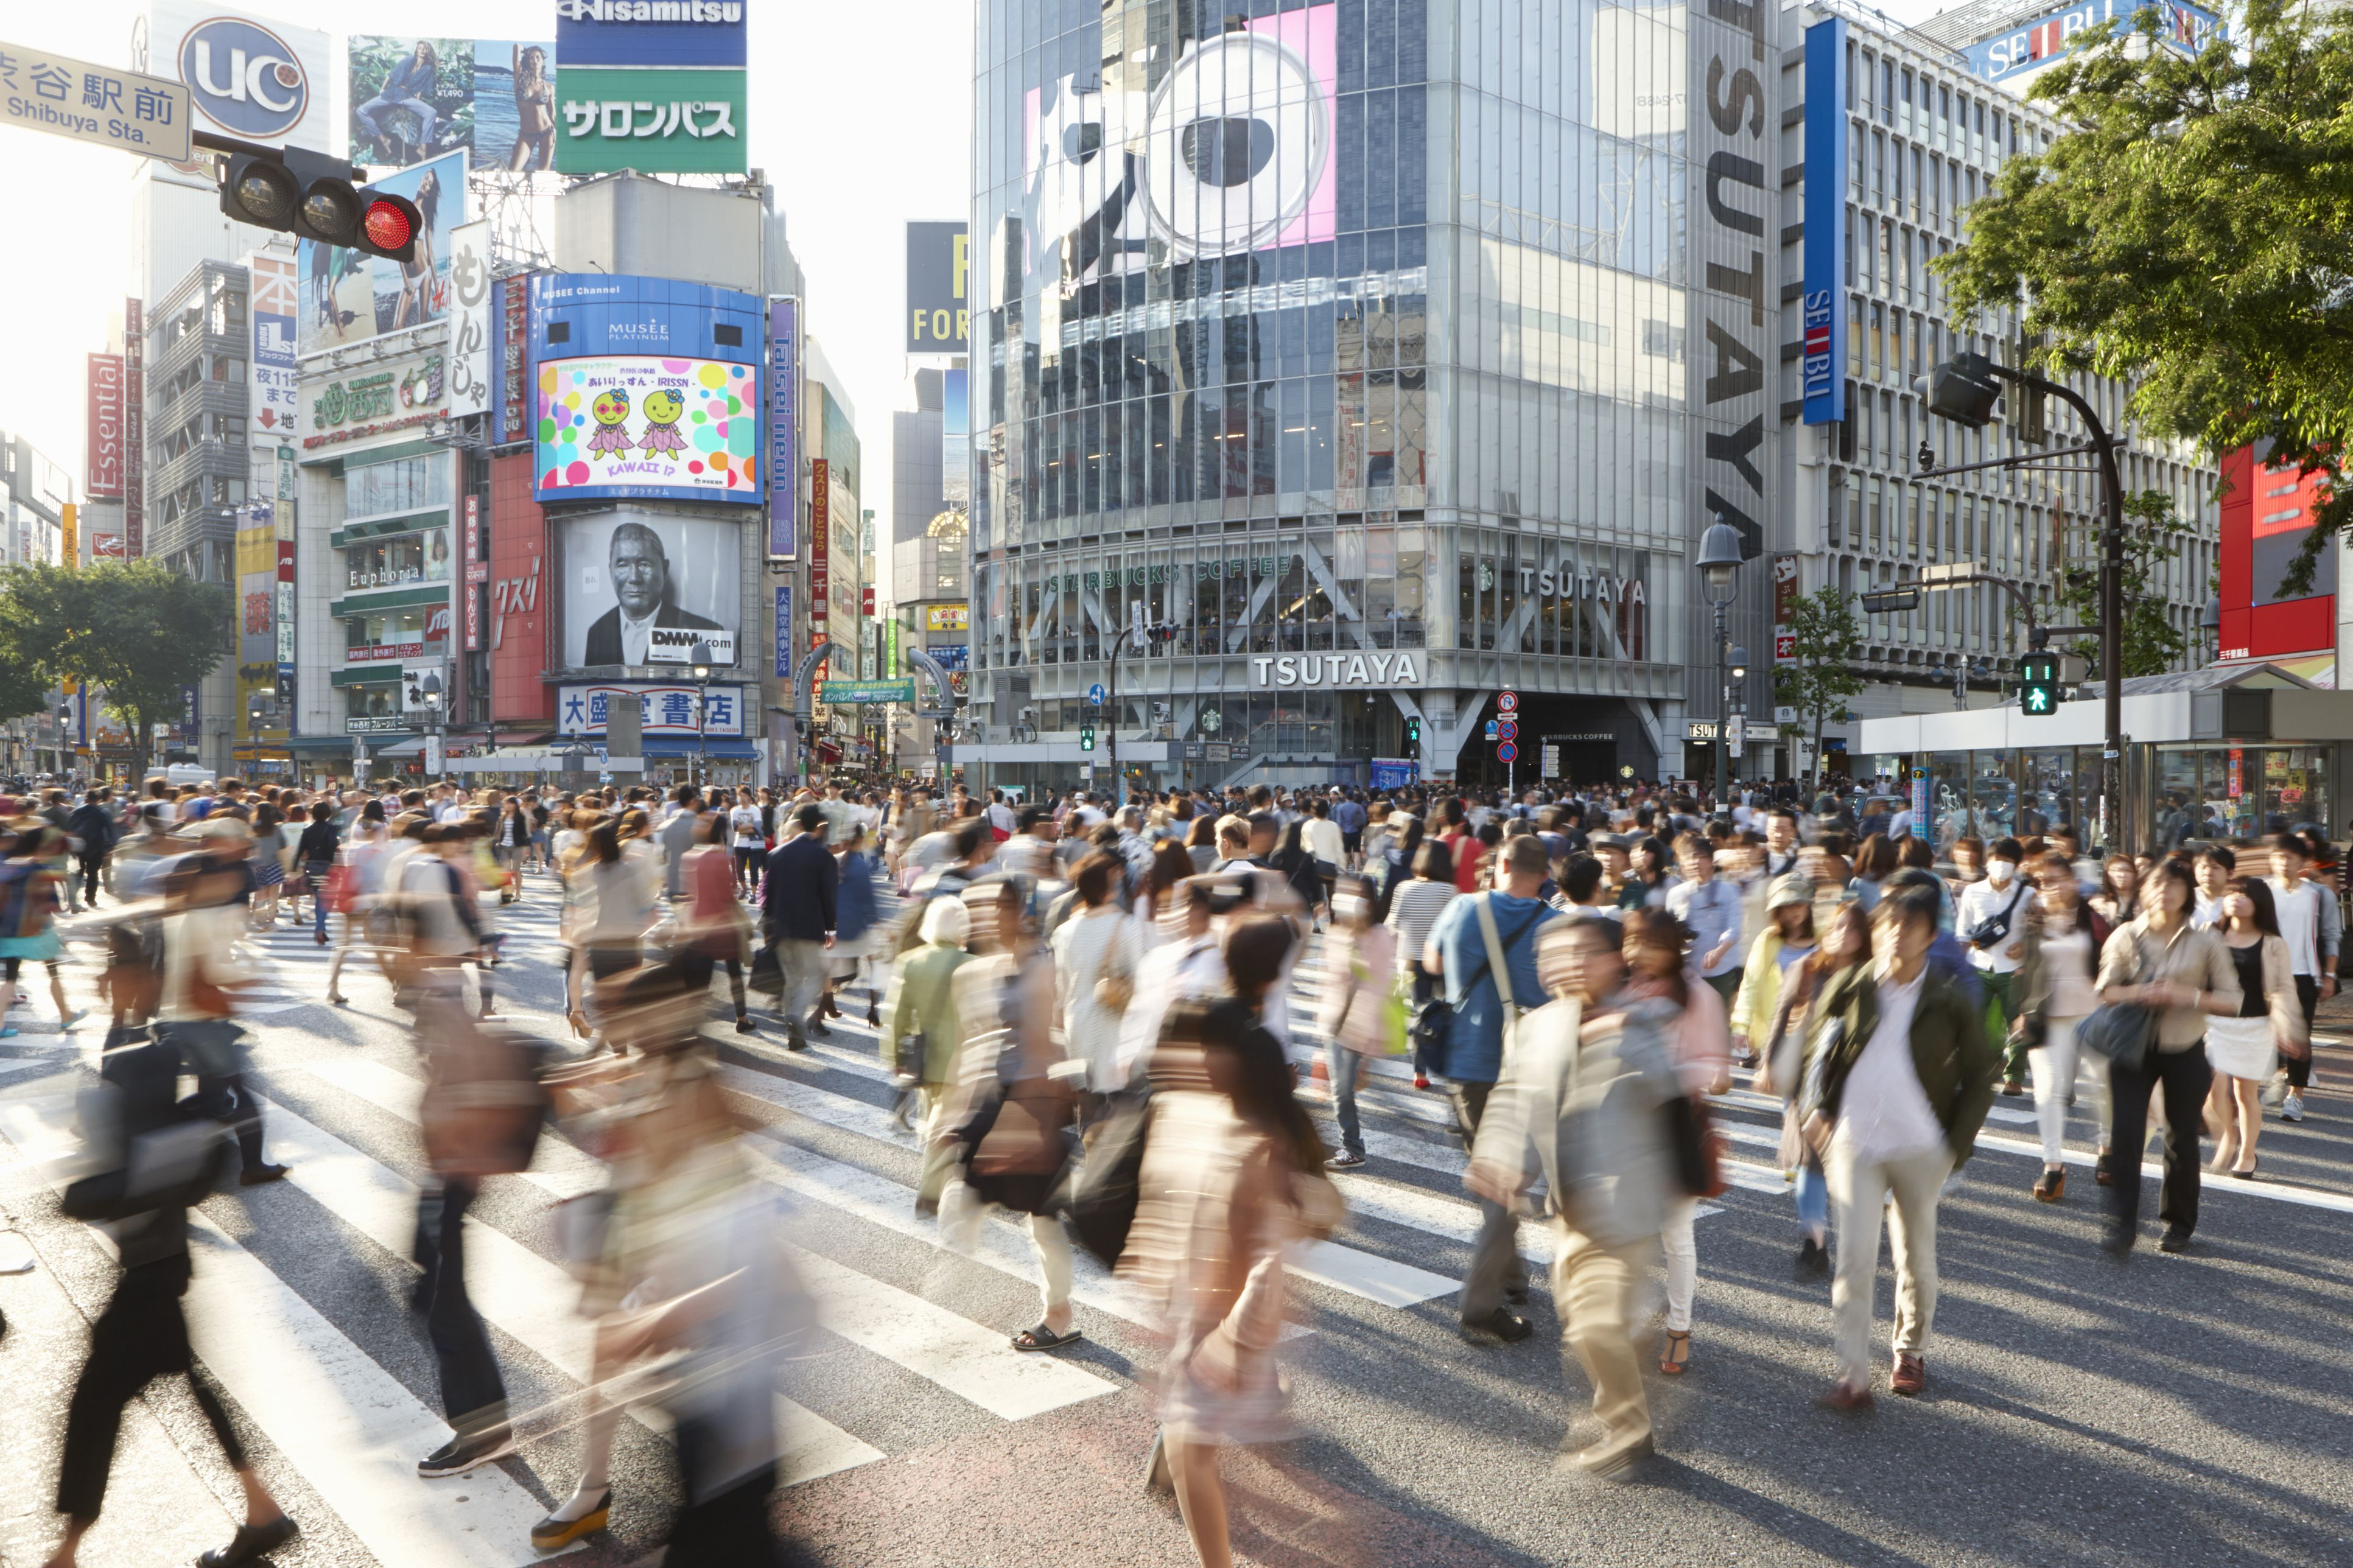 Top 6 Celebrations and Festivals in Japan